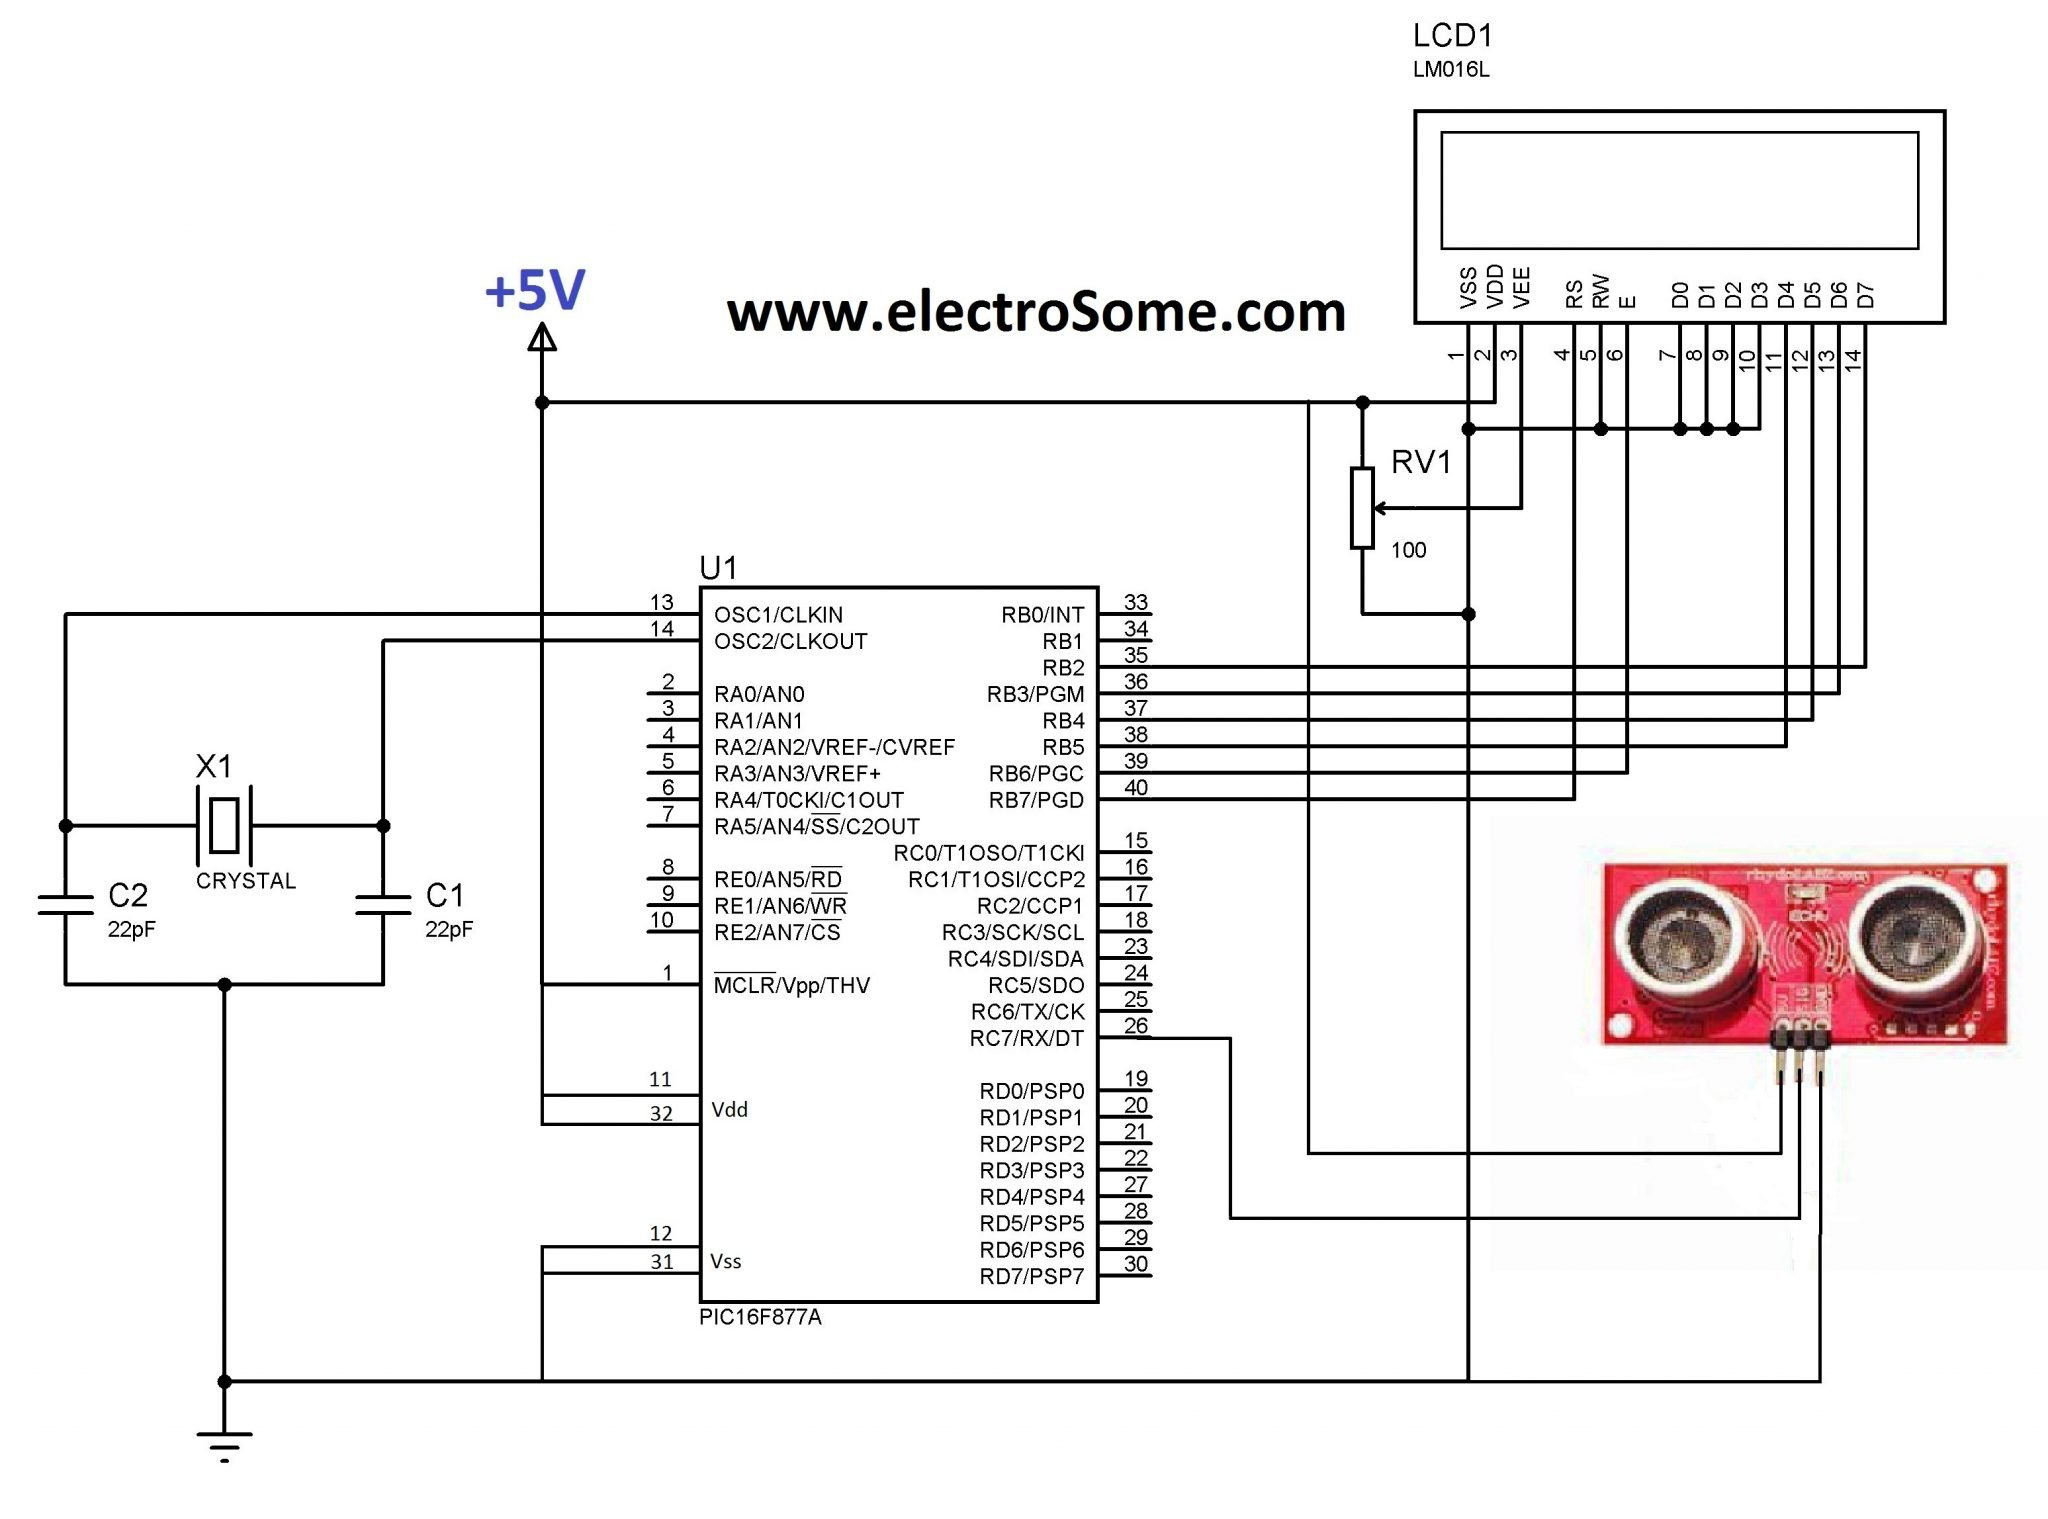 interfacing ultrasonic distance sensor ascii pic microcontroller circuit diagram interfacing ultrasonic sensors pic microcontroller